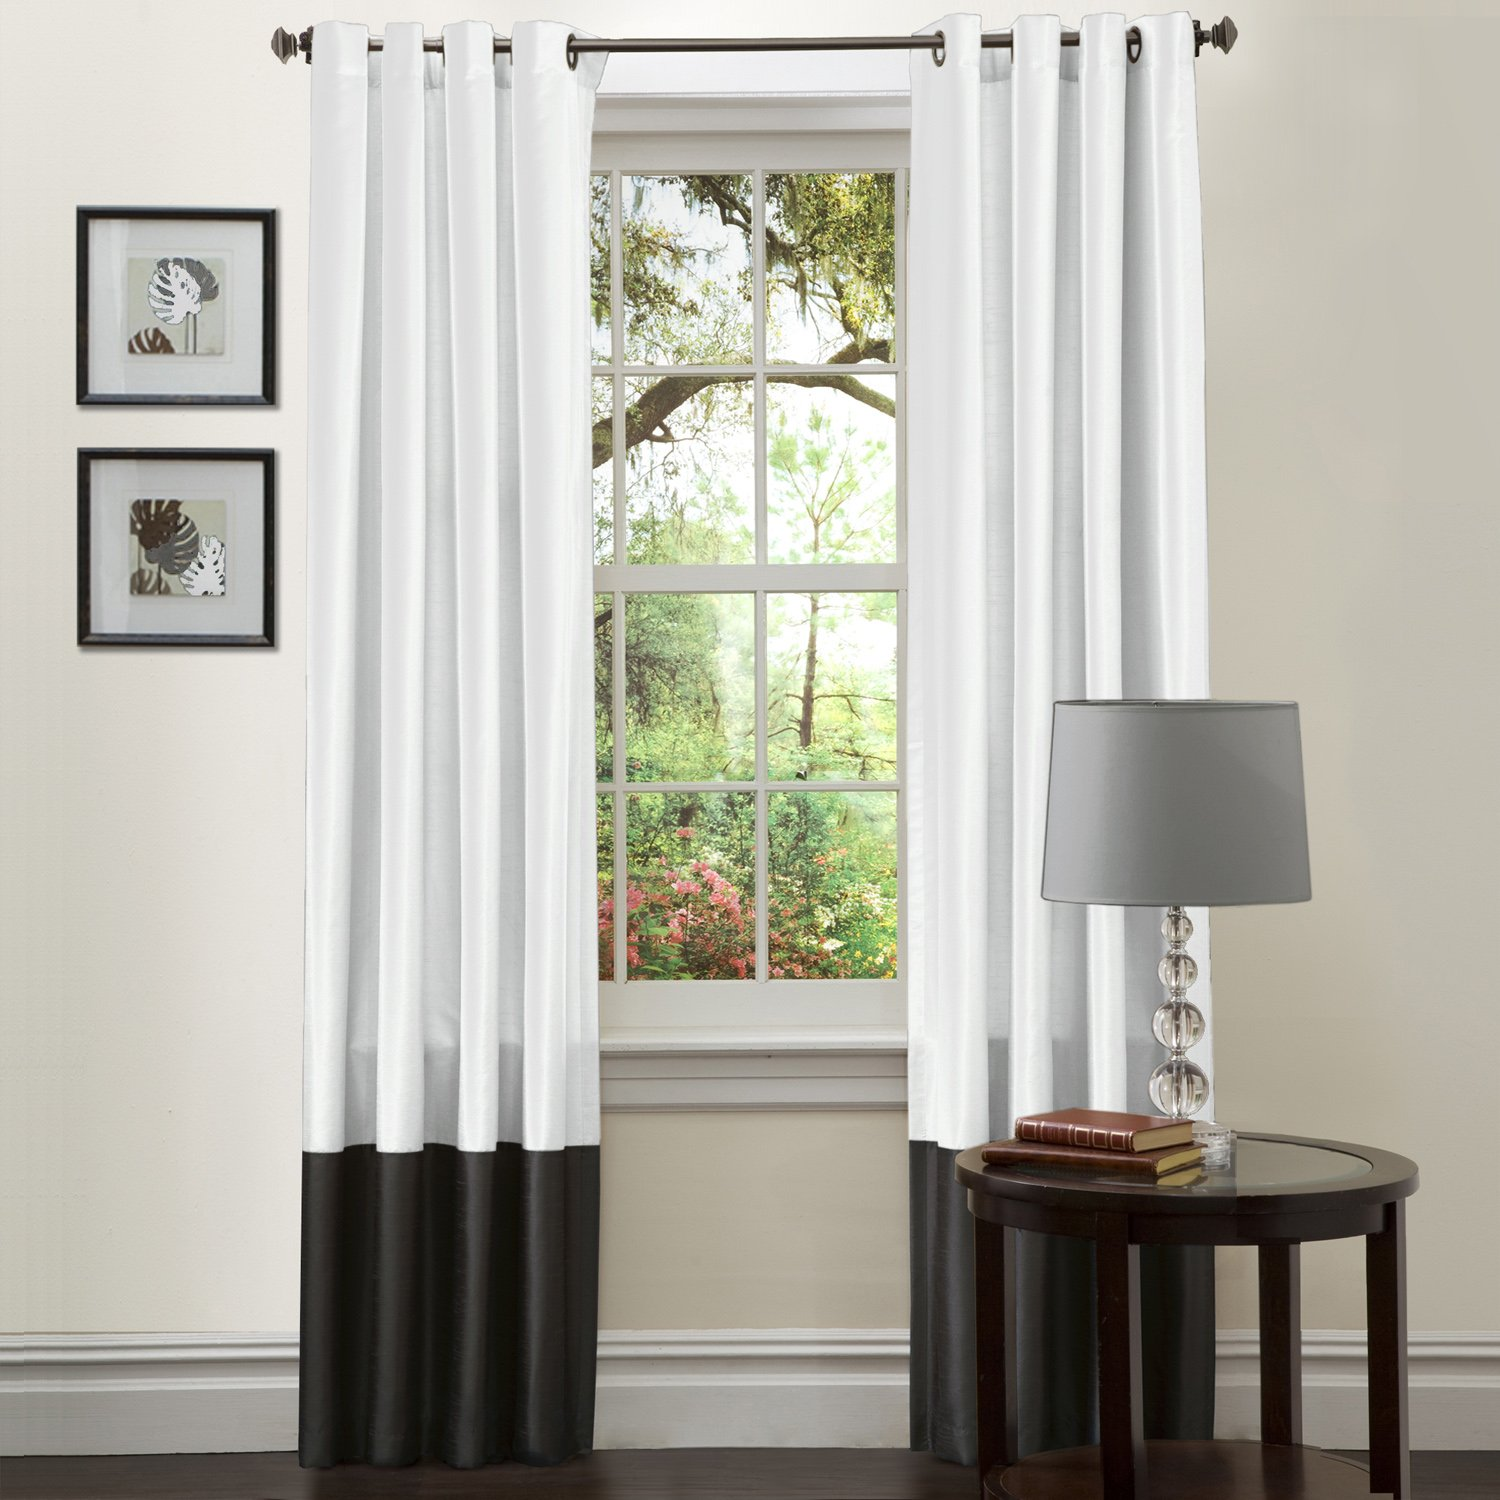 Lush Decor Prima Window Curtain Panel Pair, 84 inch x 54 inch, Black/White, Set of 2